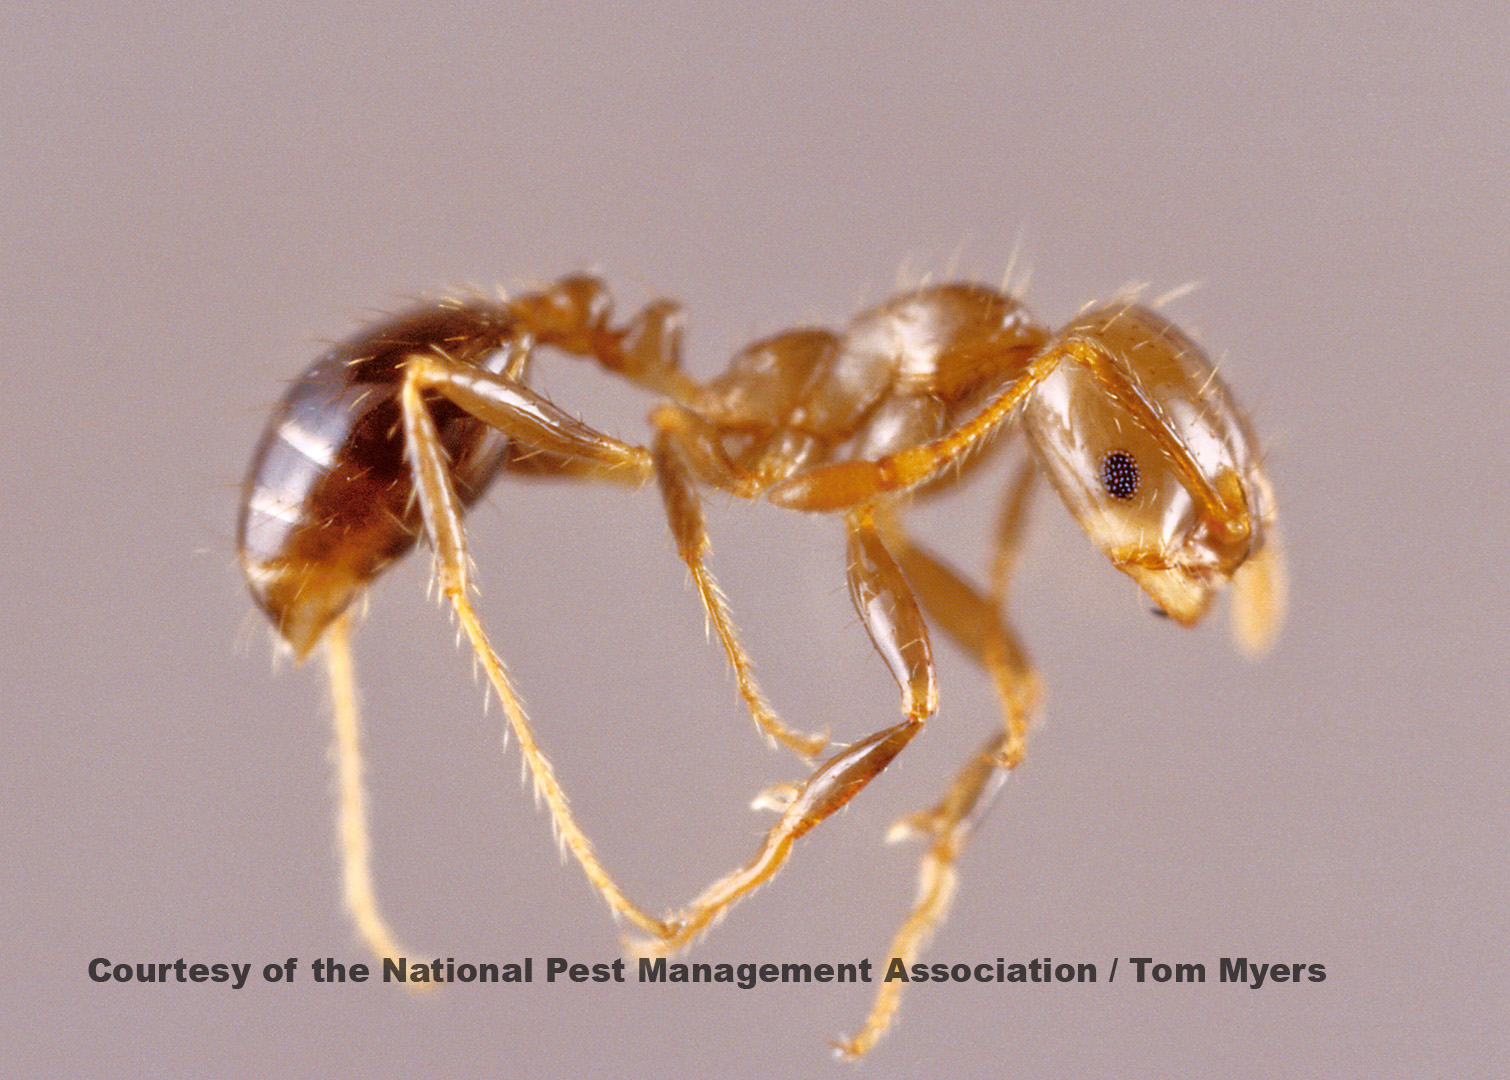 Red Imported Fire Ants. Ants   Facts About Ants   Types of Ants   PestWorldforKids org